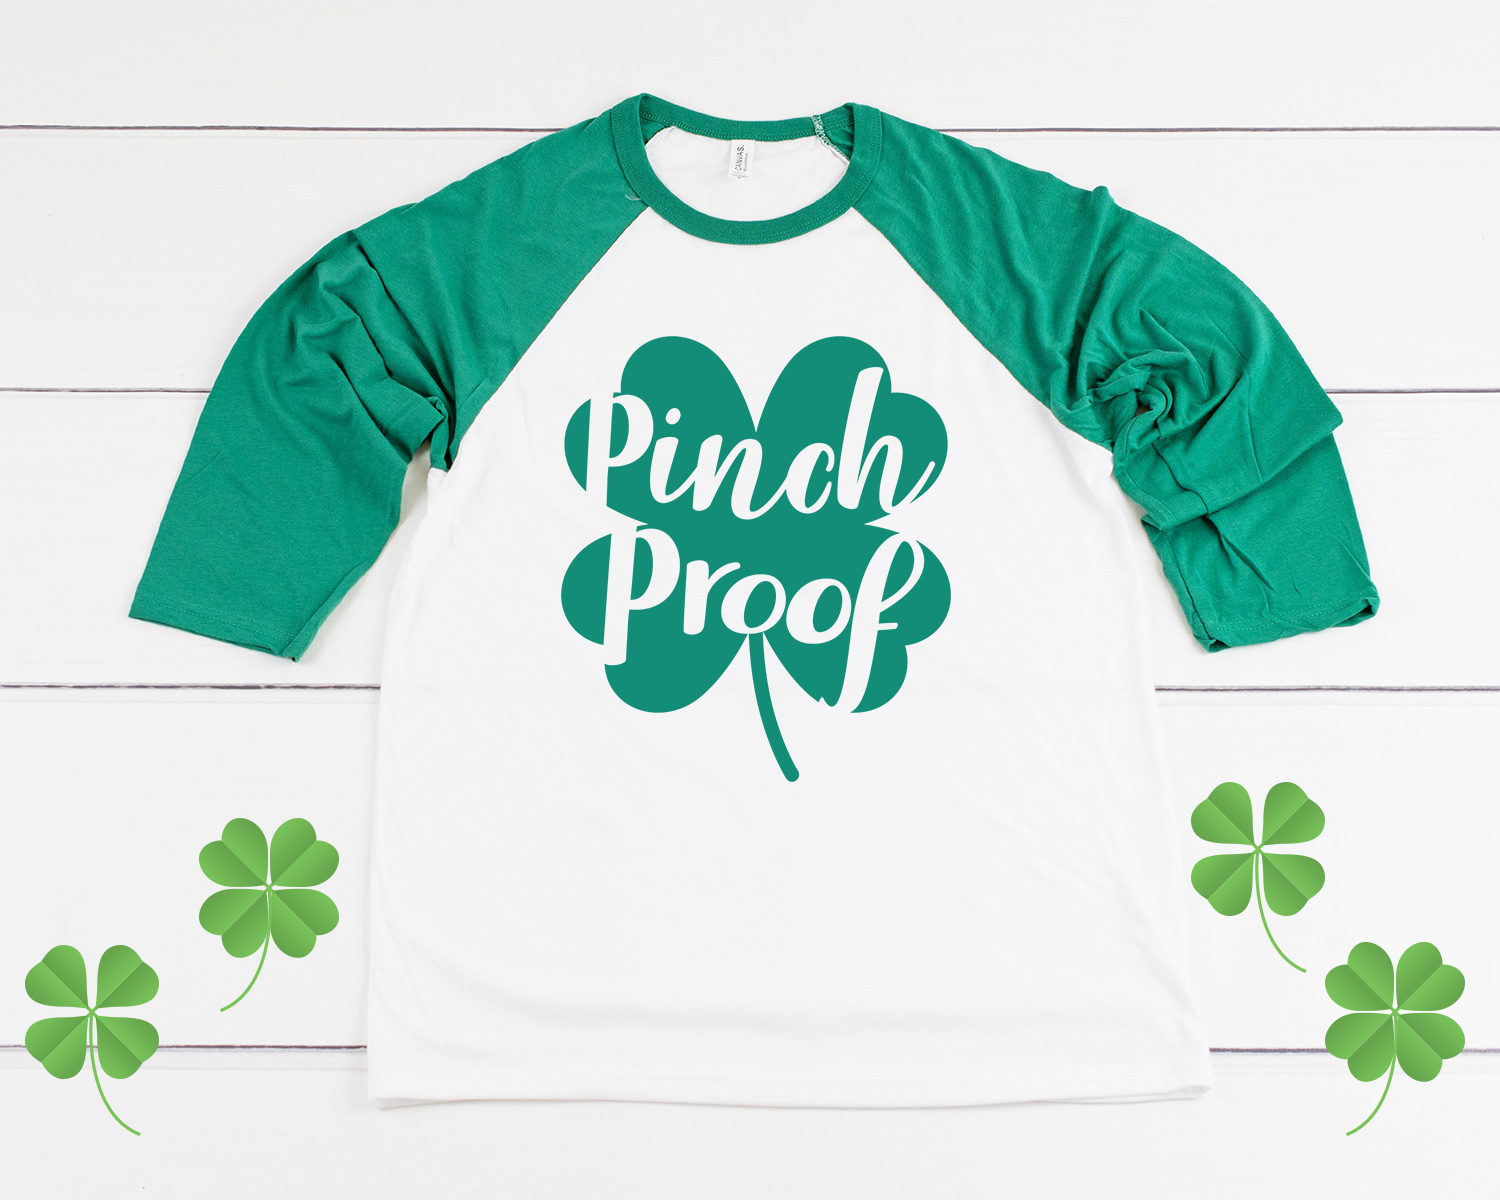 3893833a ... St. Patrick's Day, and it's easy to achieve with these cute DIY green  shirts and hats! This fun unisex design is perfect for girls and boys of  all ages!